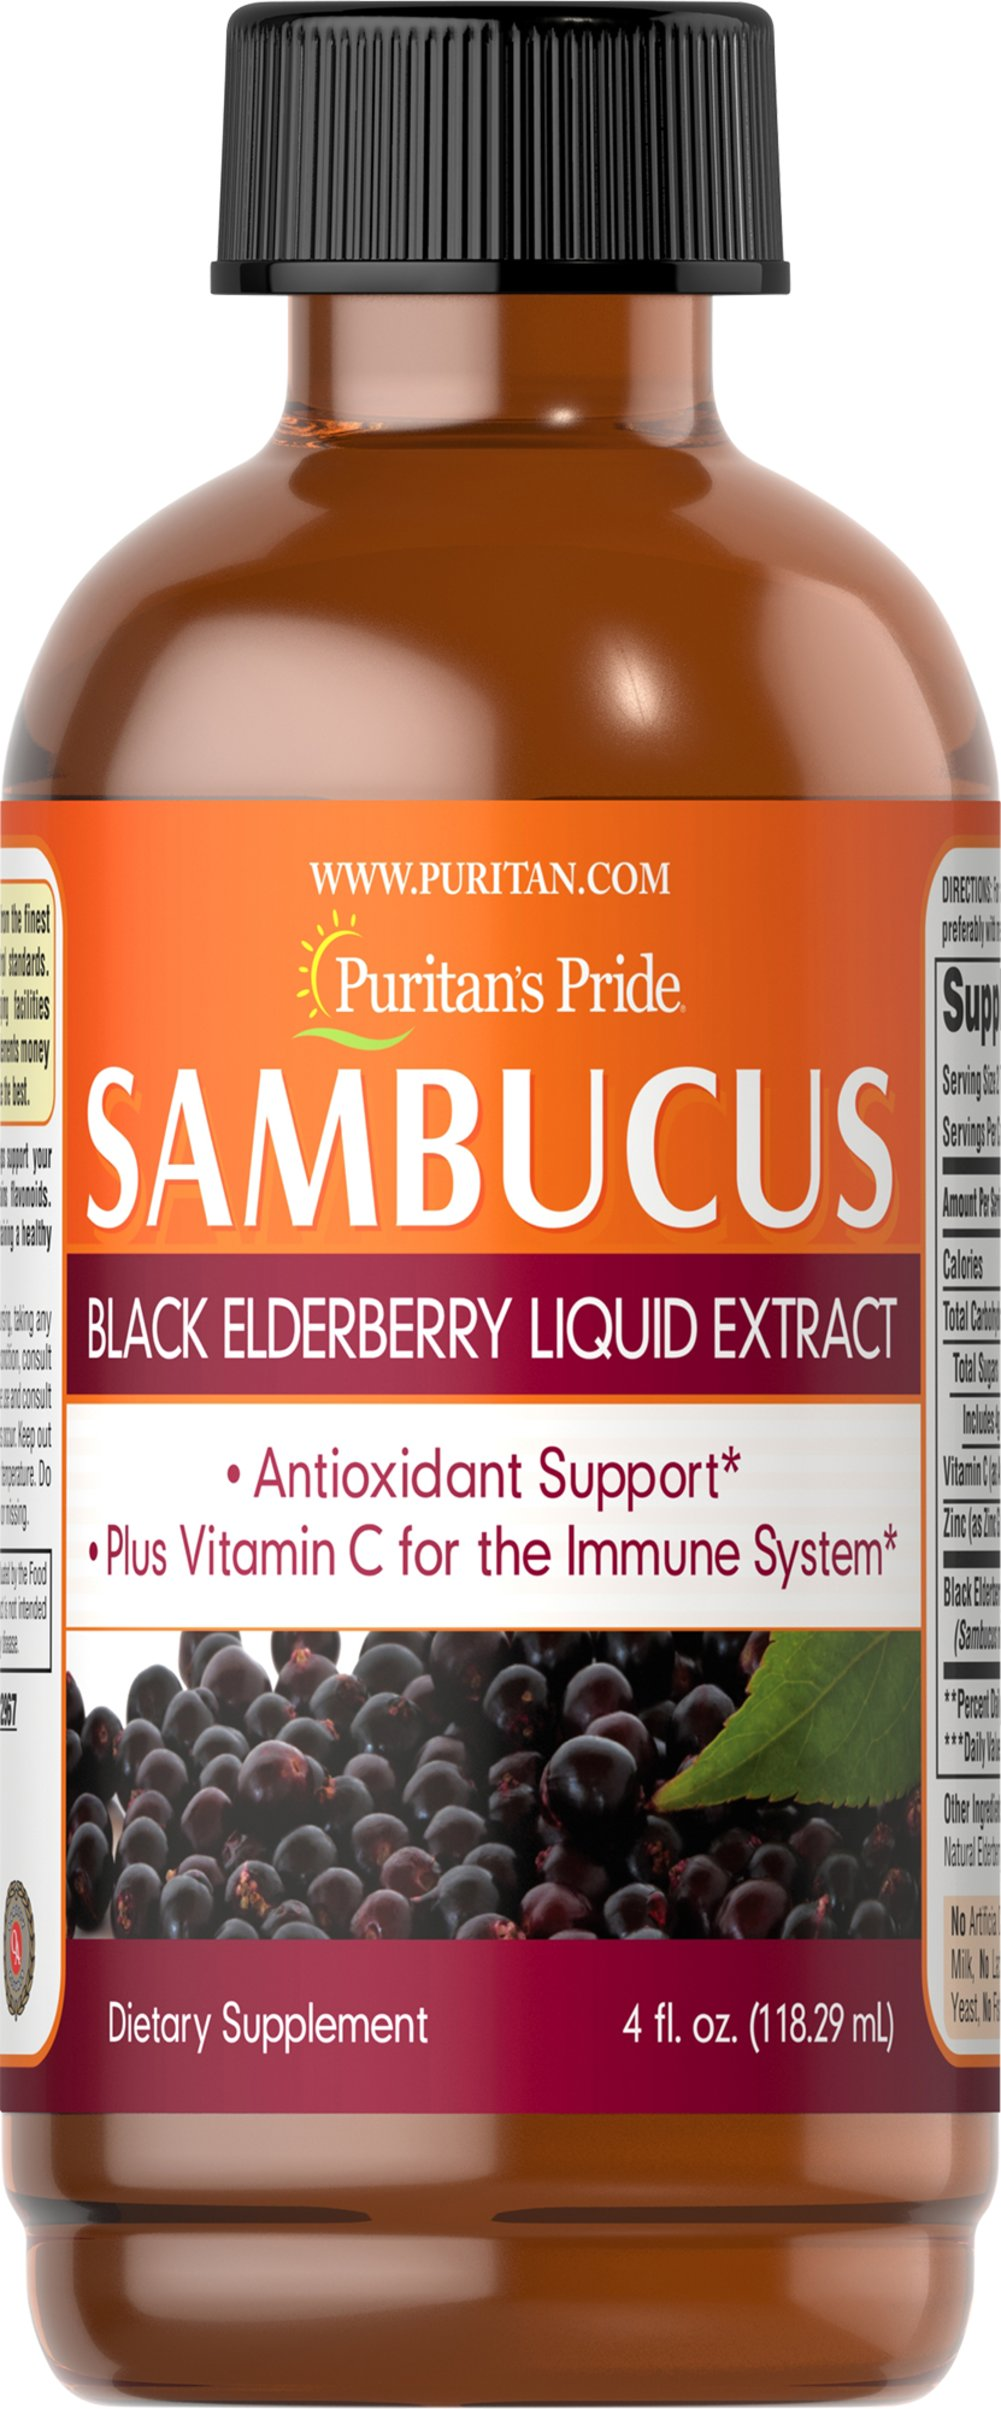 Sambucus Black Elderberry Liquid Extract Thumbnail Alternate Bottle View